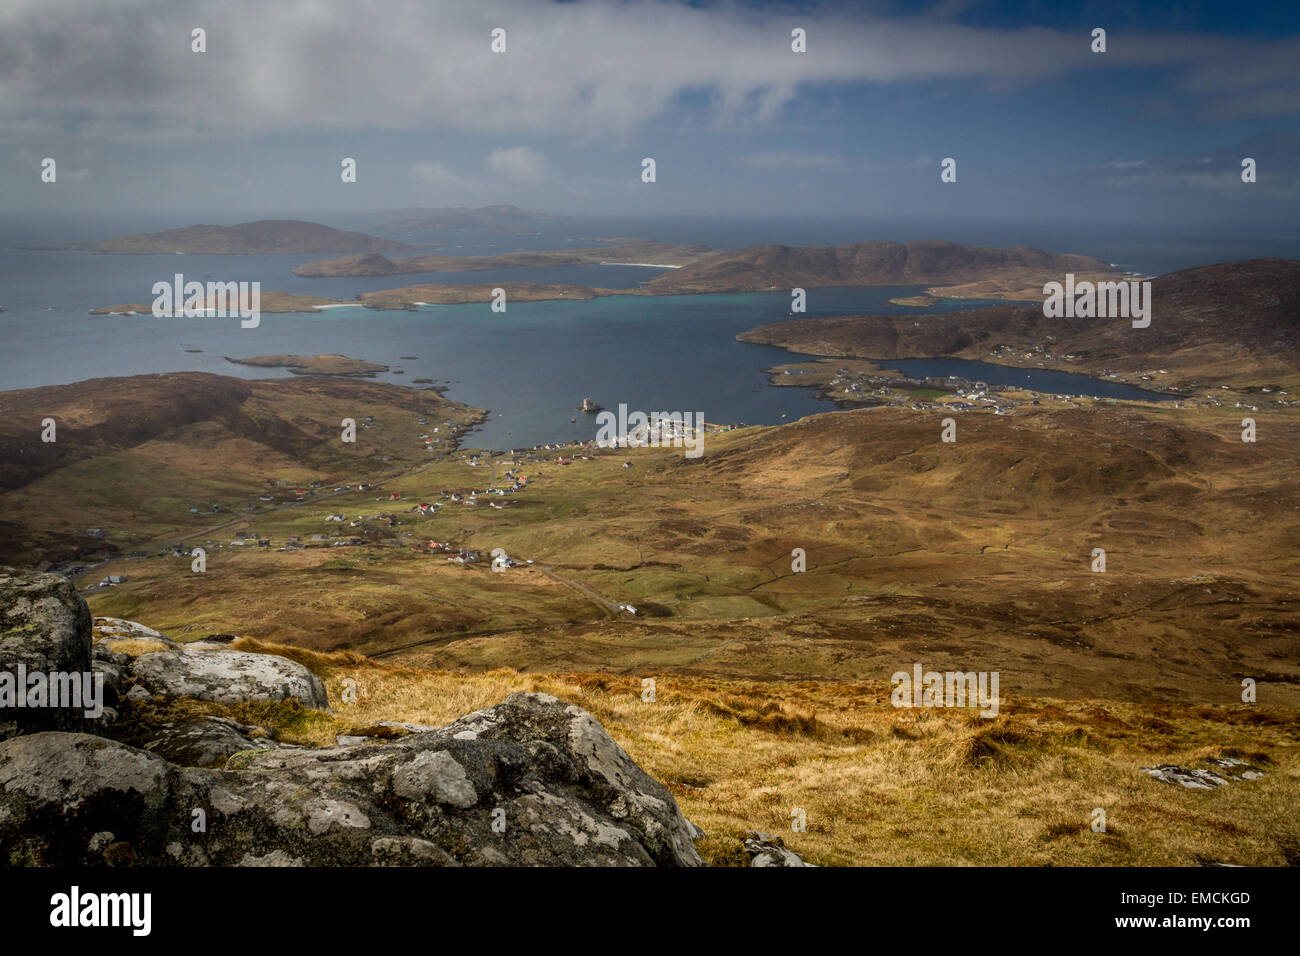 Striking views from the summit of Heaval on the Isle of Barra, looking over Castlebay and Vatersay in the Outer - Stock Image